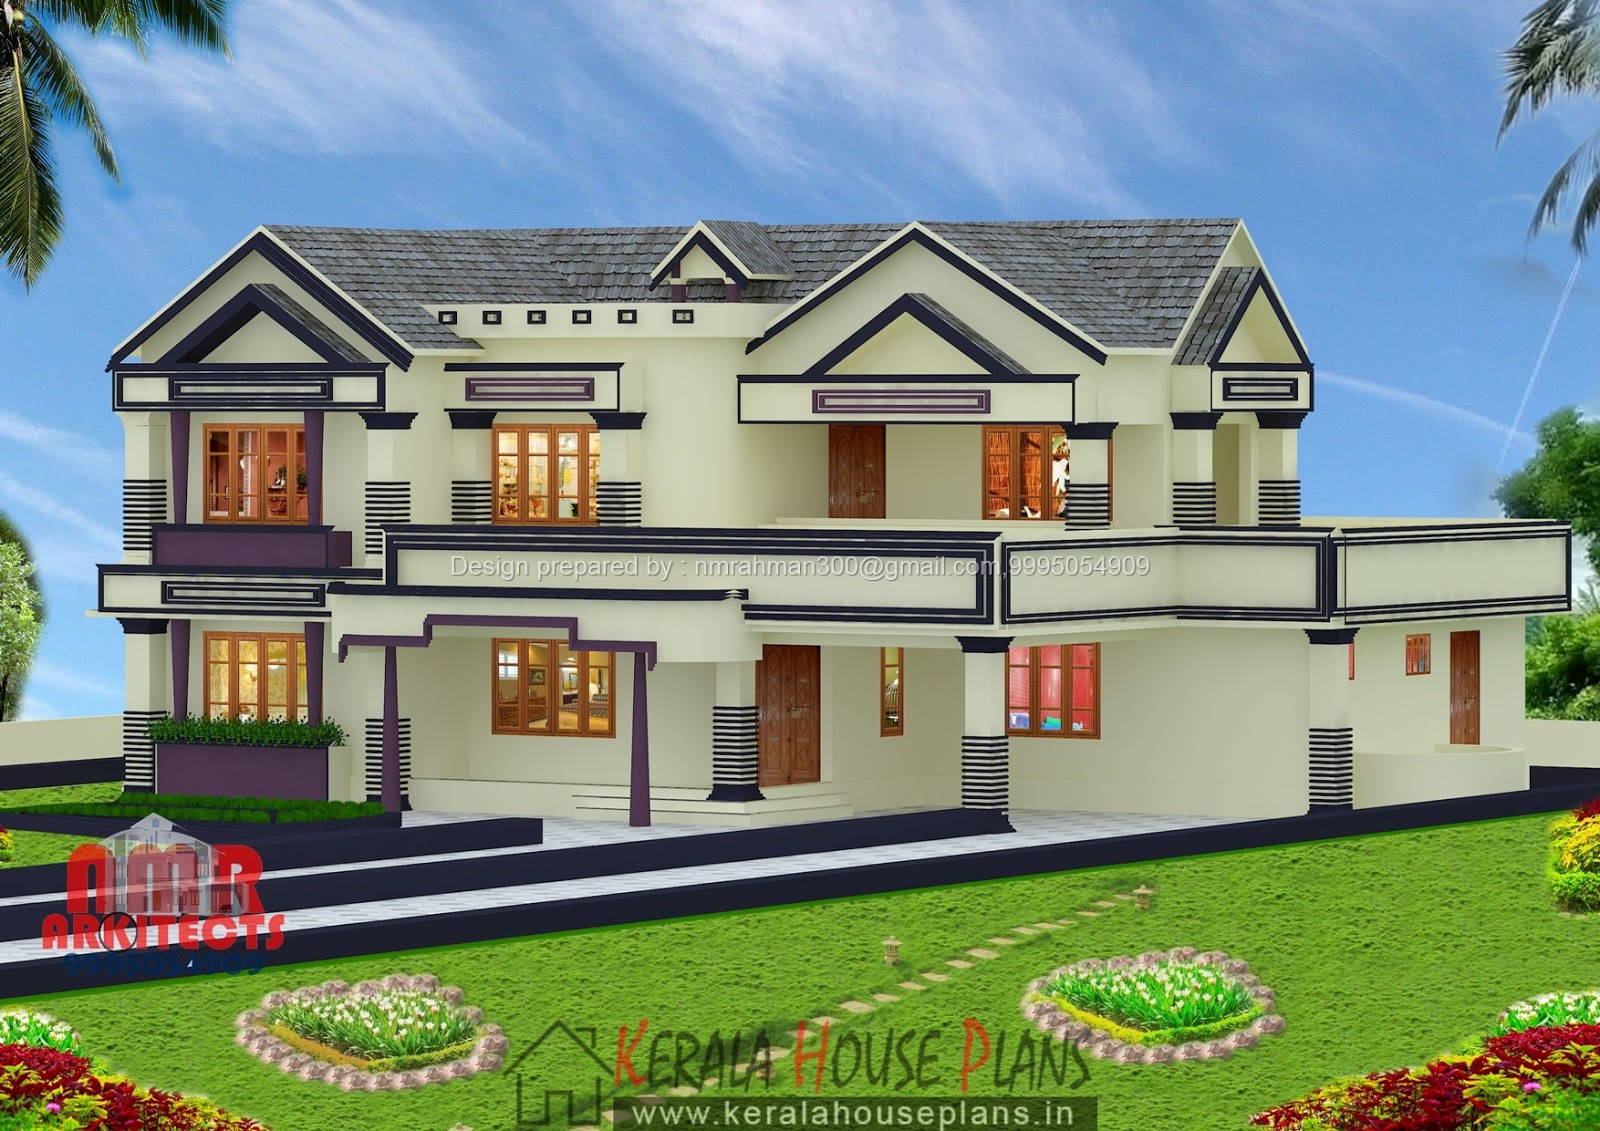 Kerala House Plans Above 3000 Sq Ft Kerala House Plans